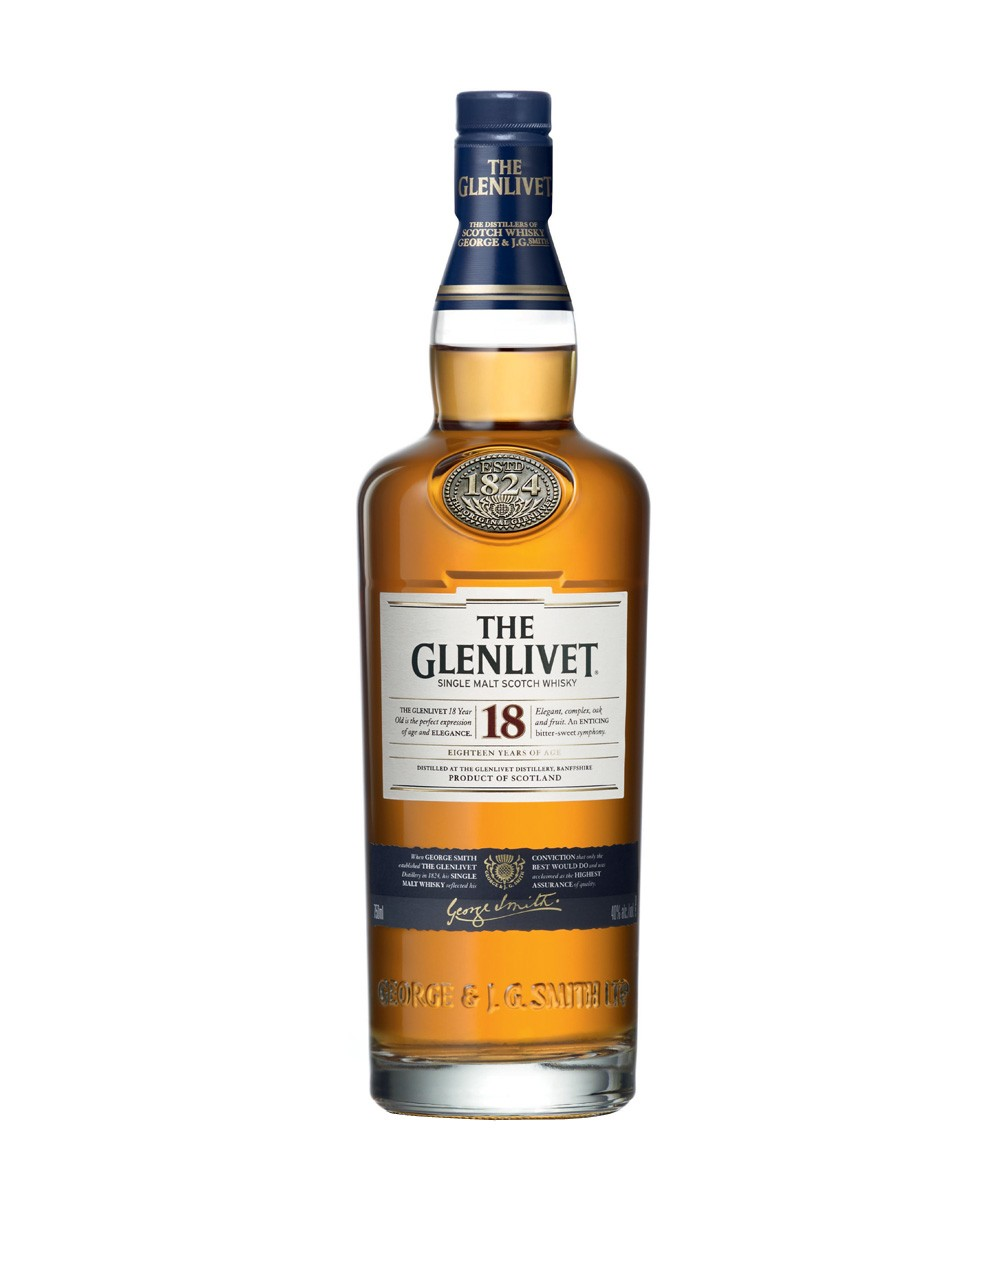 The Glenlivet 18 Year Old Scotch Whisky   Buy Online or Send as a Gift   ReserveBar